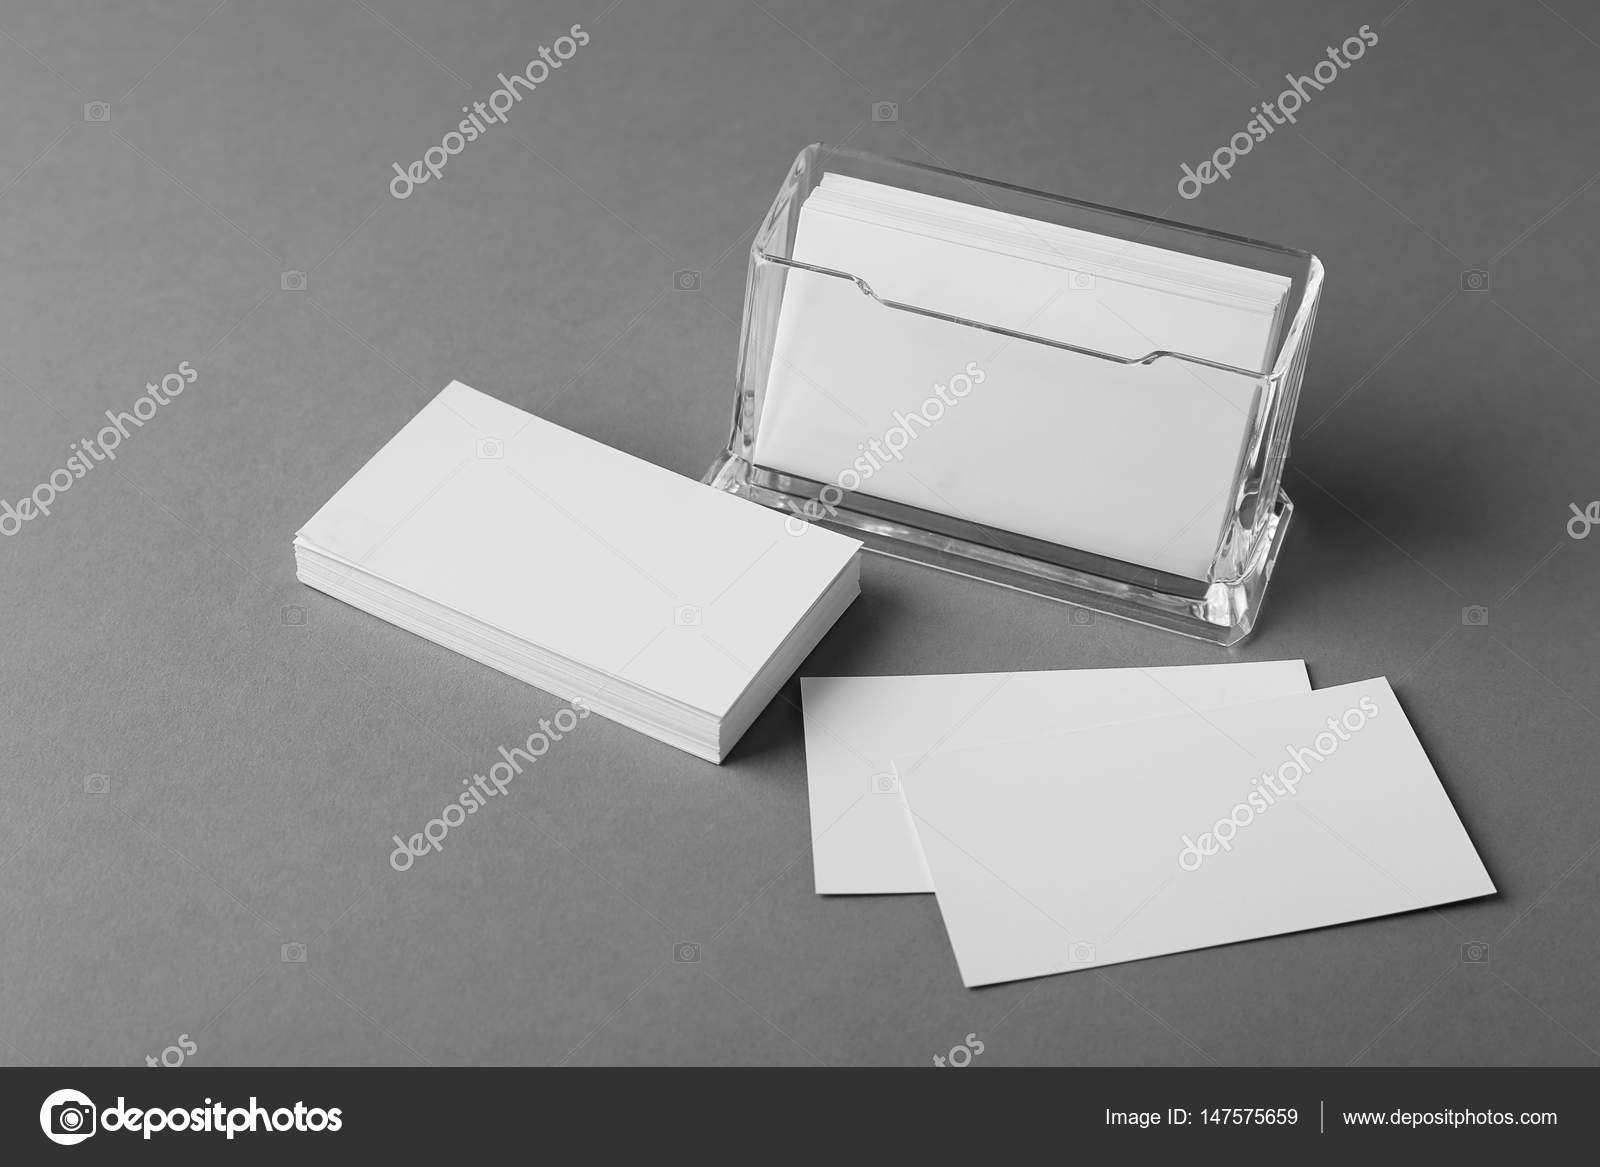 Best business card stock gallery free business cards best business card stock gallery free business cards business card stock paper images free business cards magicingreecefo Images